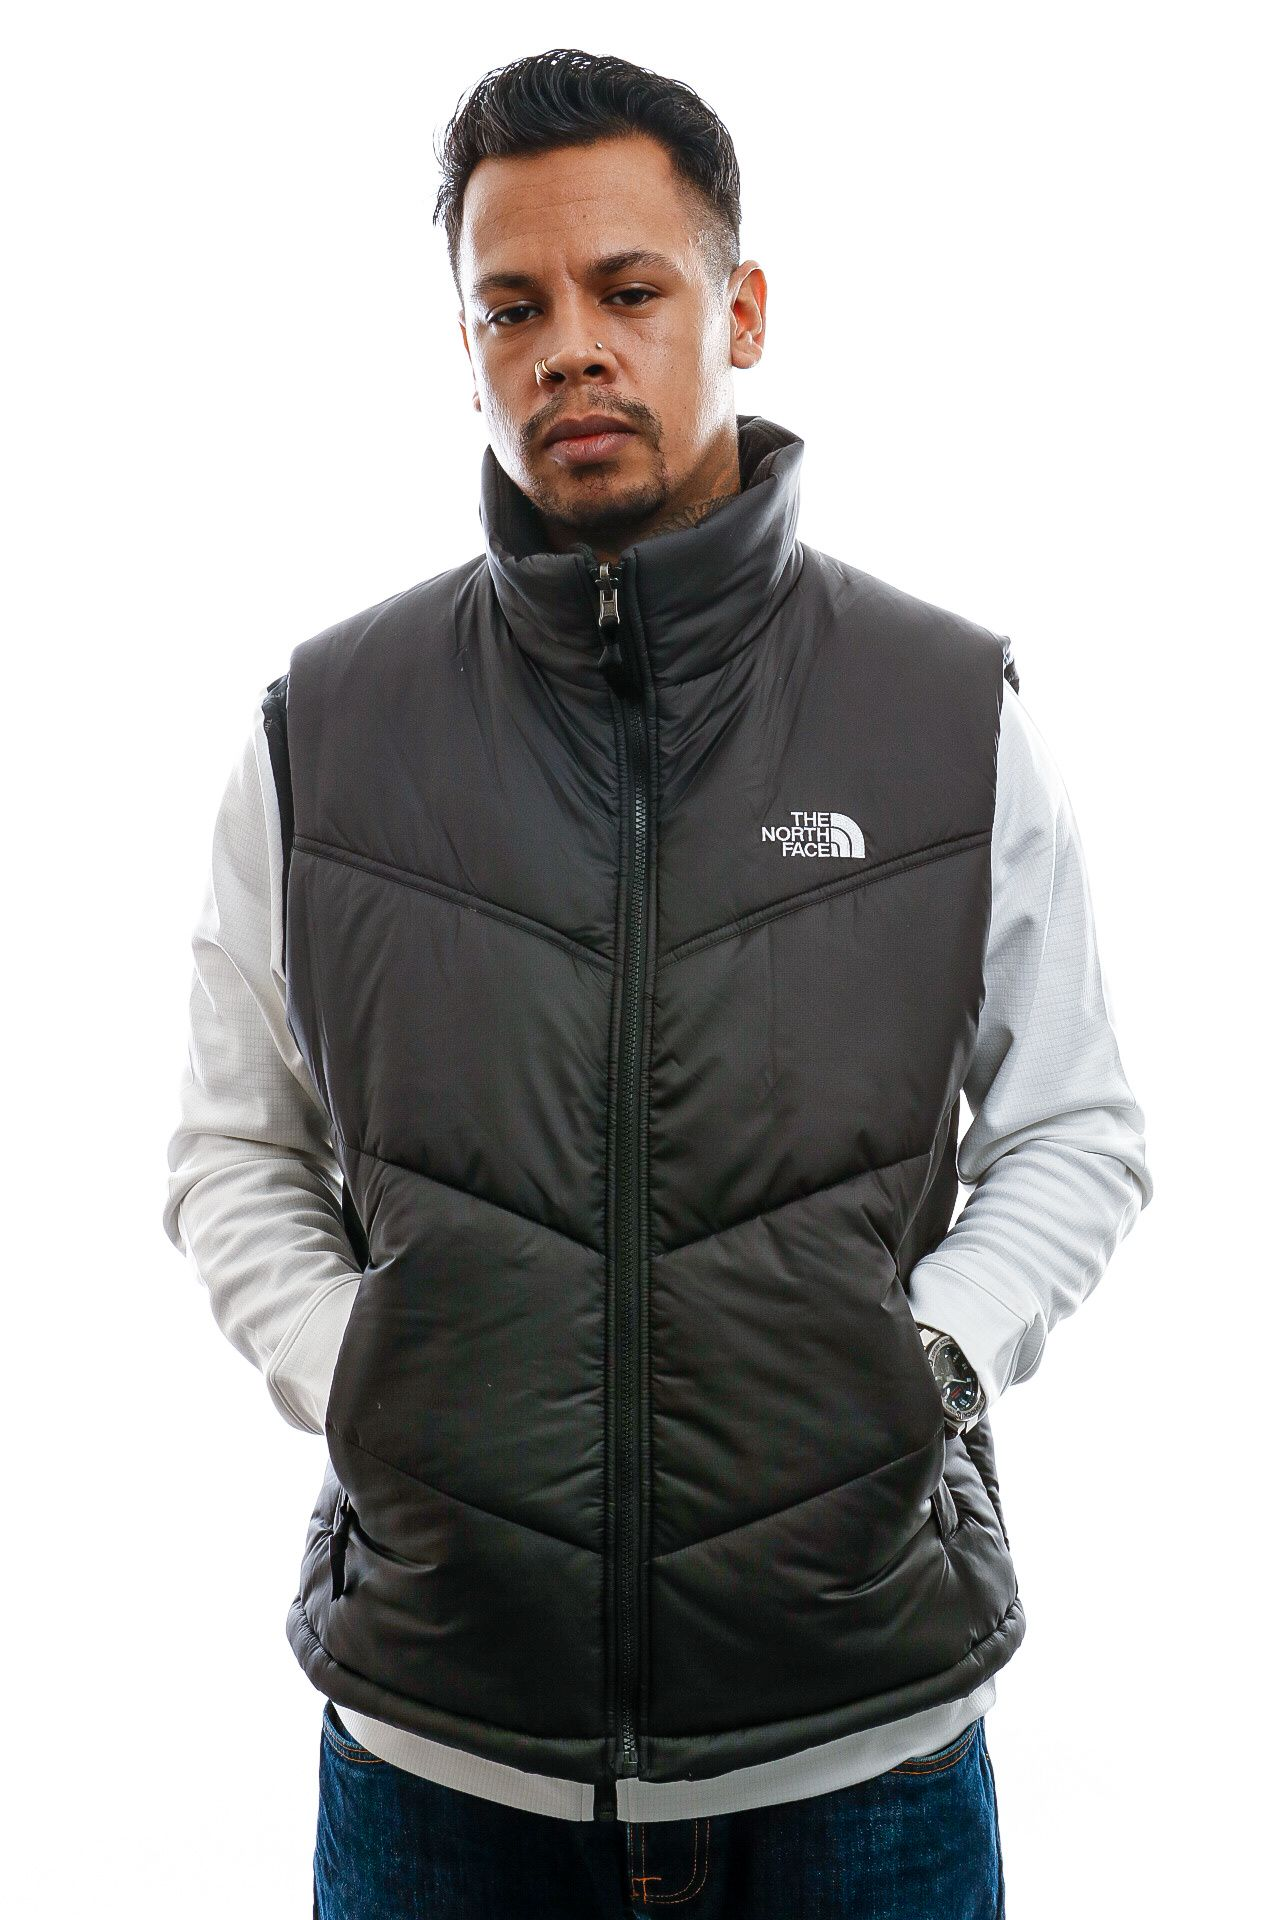 Afbeelding van The North Face Jacket Men's Saikuru Vest Black NF0A3Y3ZJK31